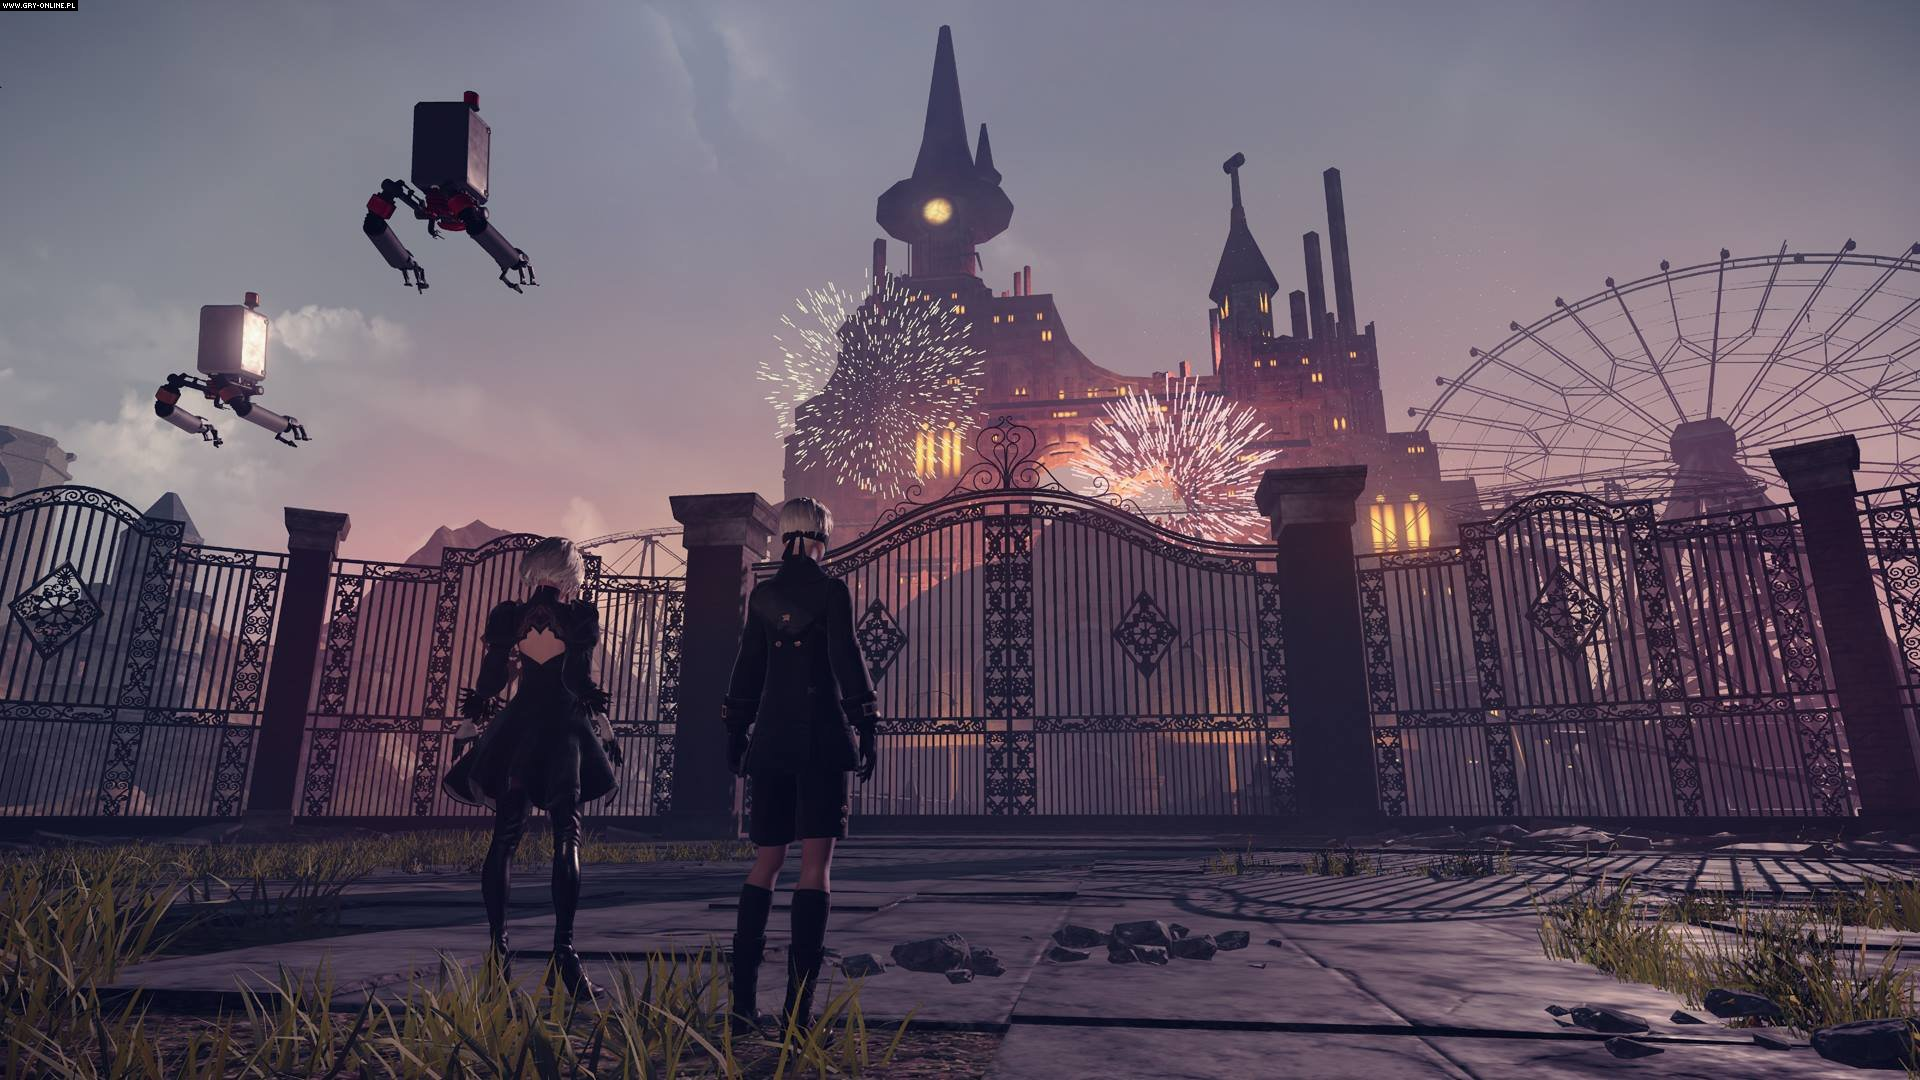 Nier: Automata PC, PS4 Games Image 5/68, PlatinumGames, Square-Enix / Eidos